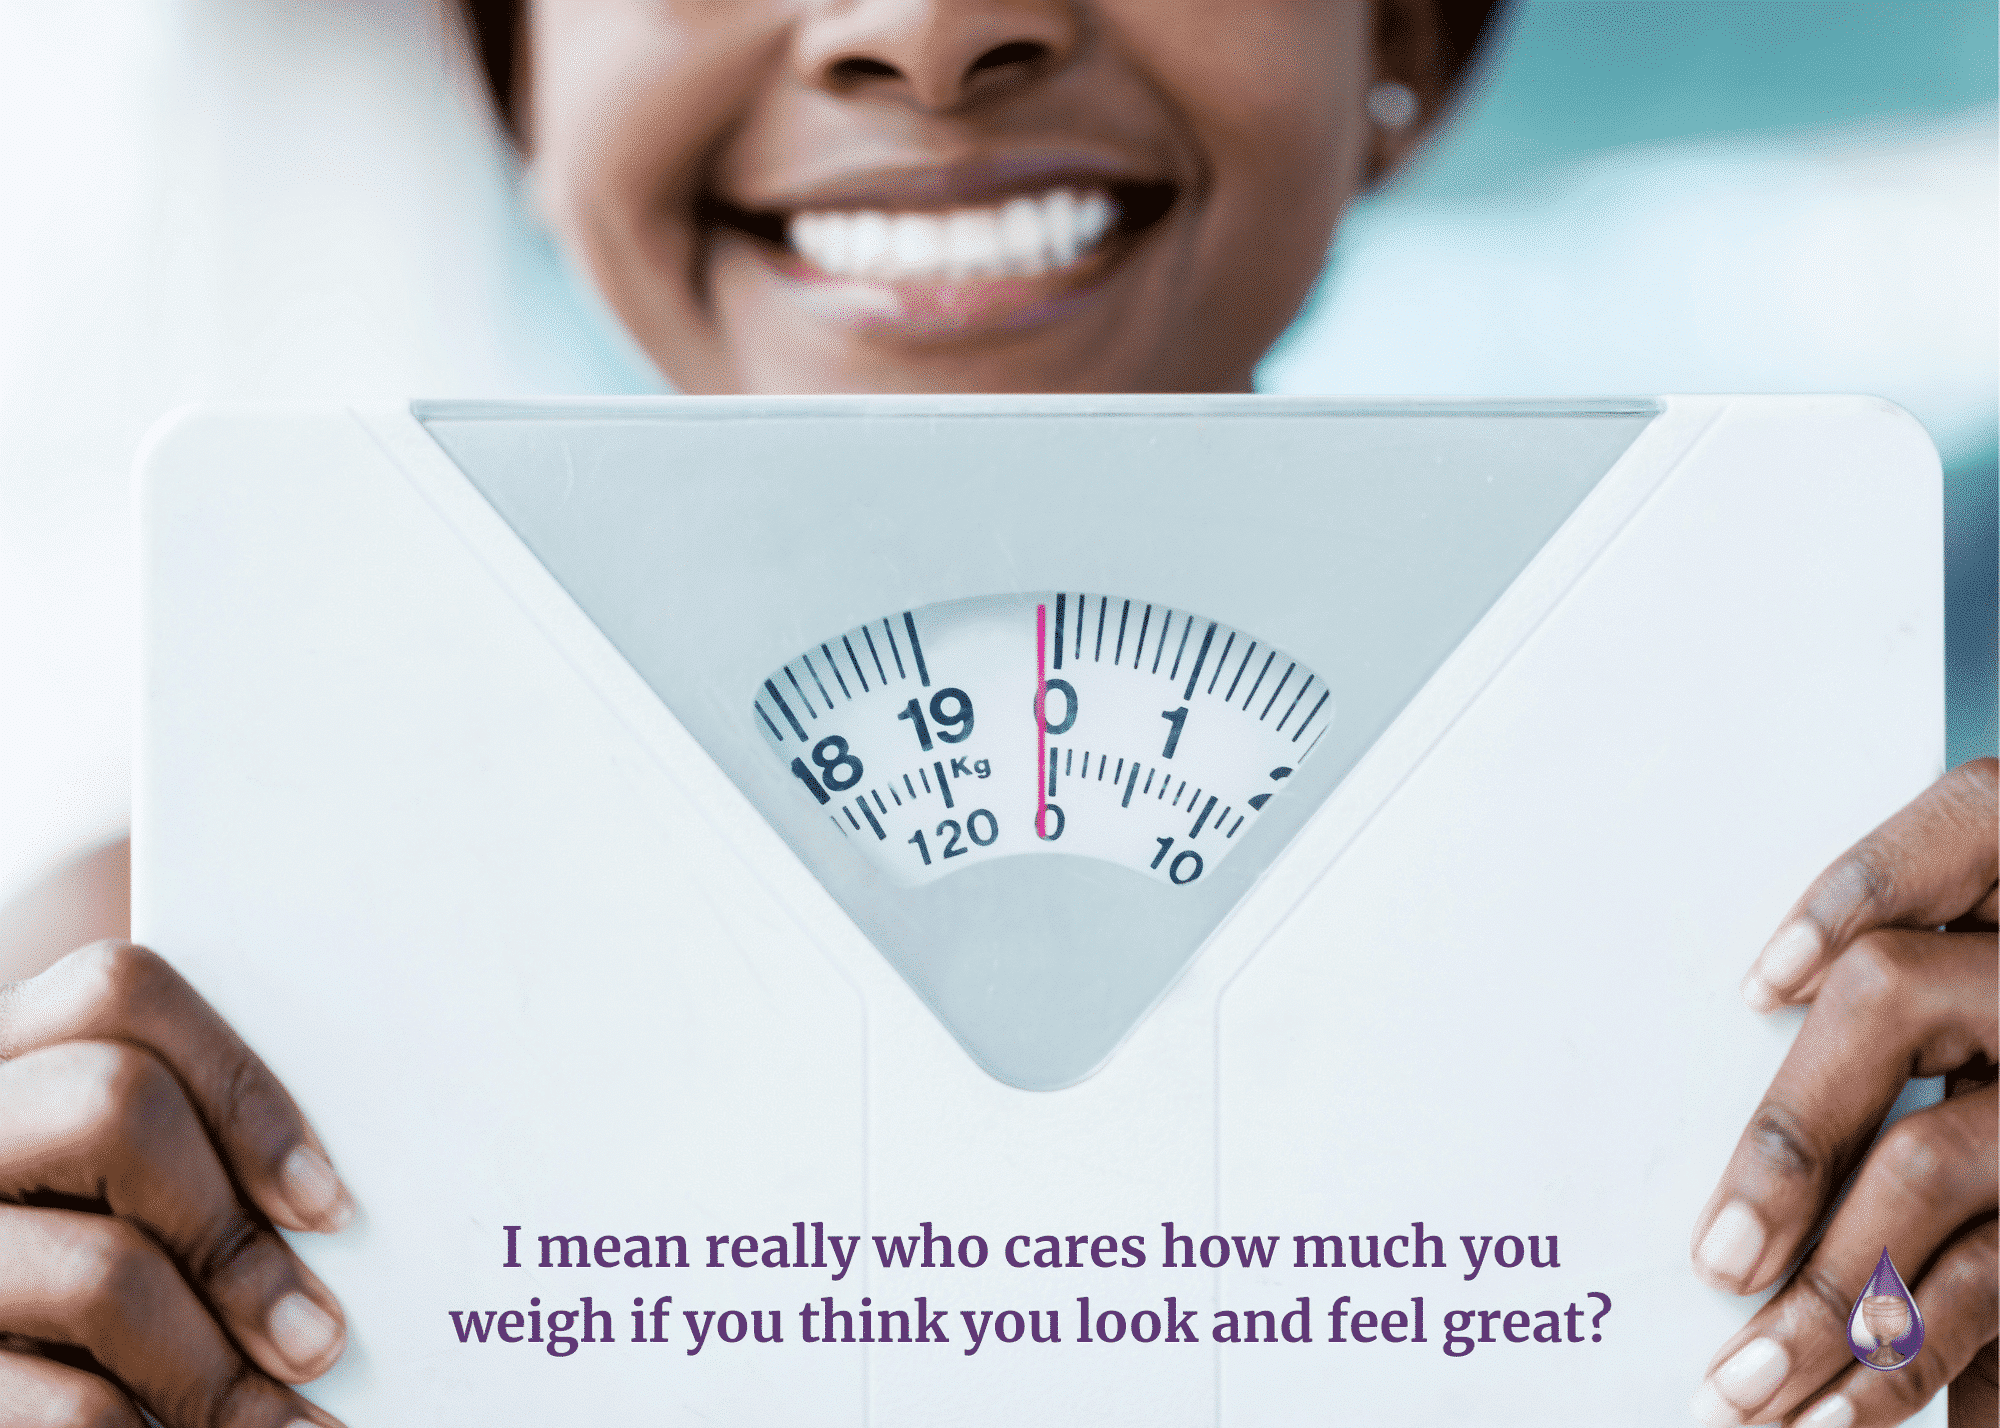 I mean really who cares how much you weigh if you think you look and feel great?